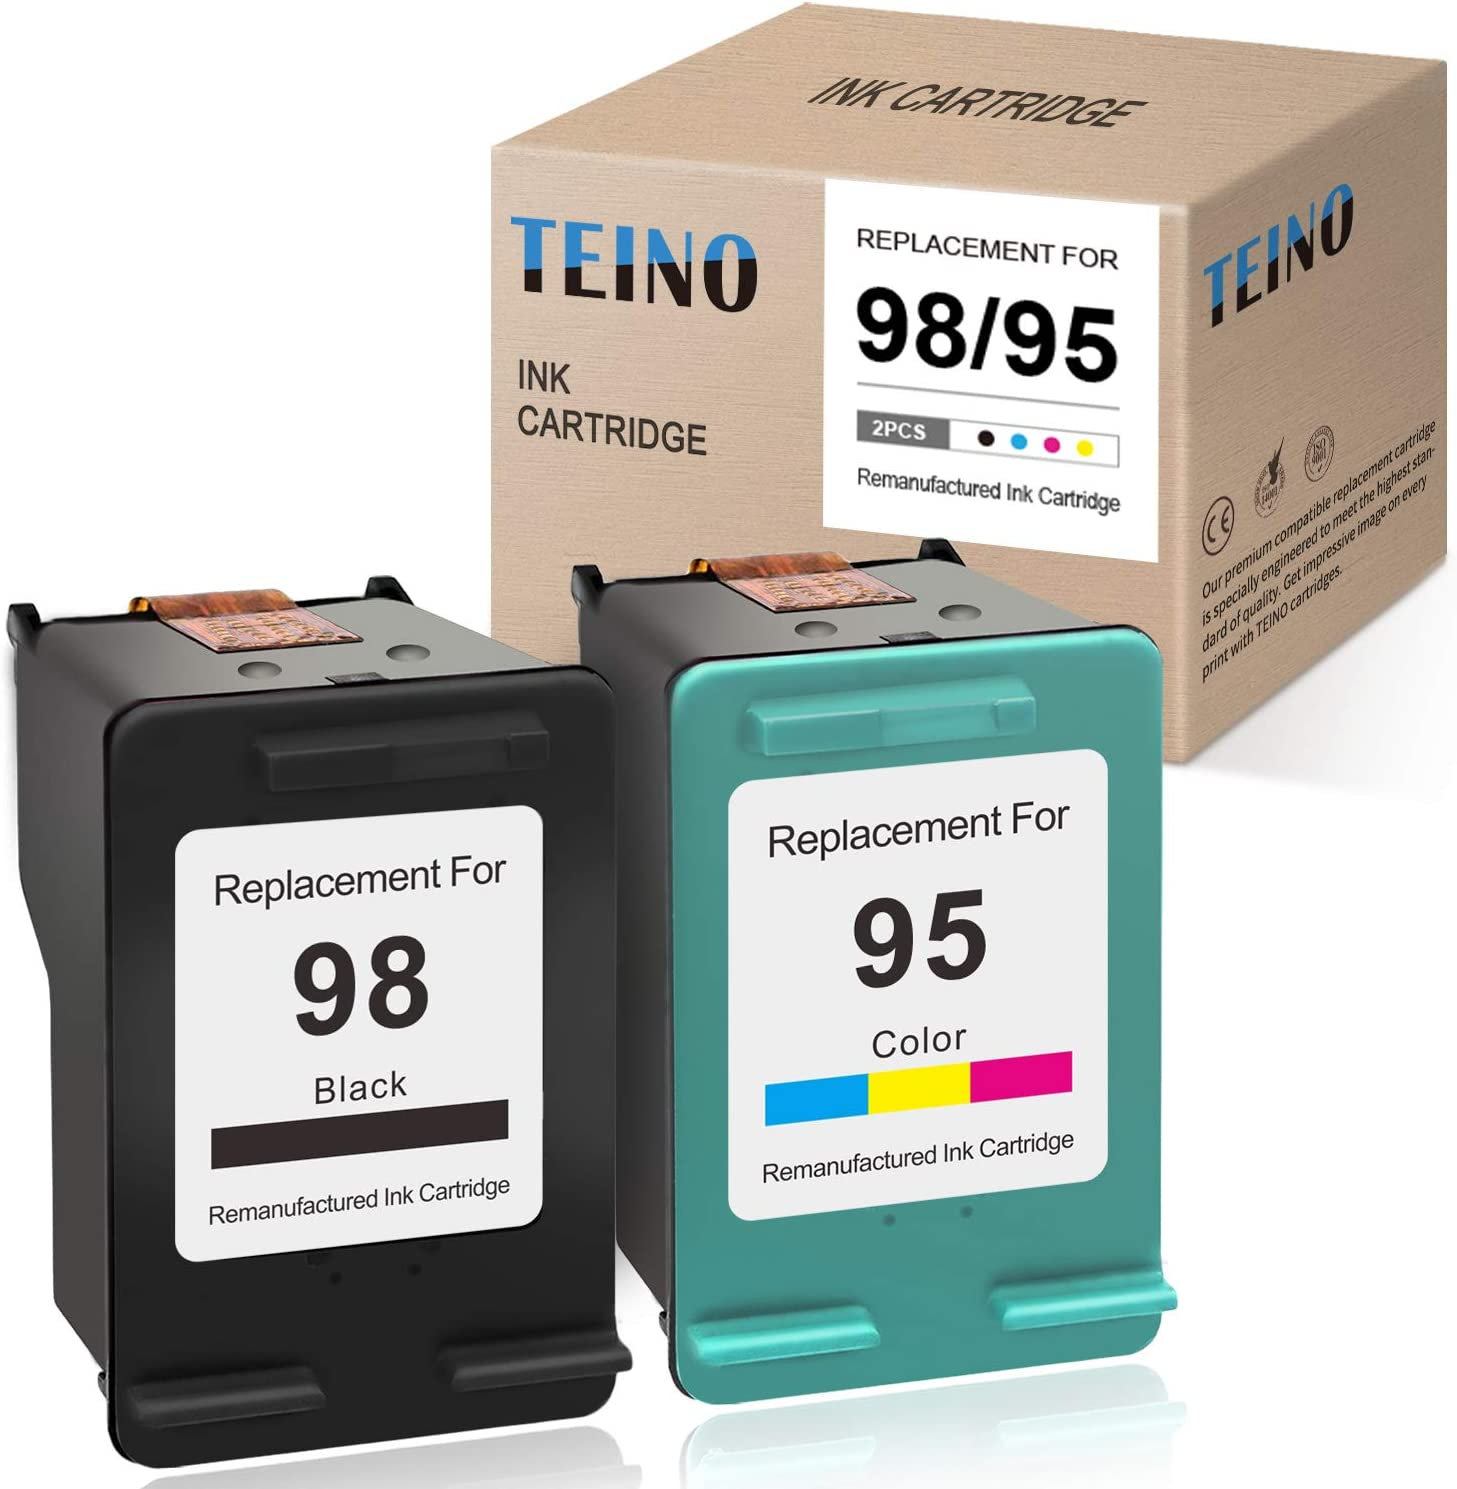 TEINO Remanufactured Ink Cartridge Replacement for HP 98 95 use with HP OfficeJet 100 H470 8030 6310 150 6300 DeskJet 5940 Photosmart 2575 2570 C4100 D5160 D5069 8050 (Black, Tri-Color, 2-Pack)